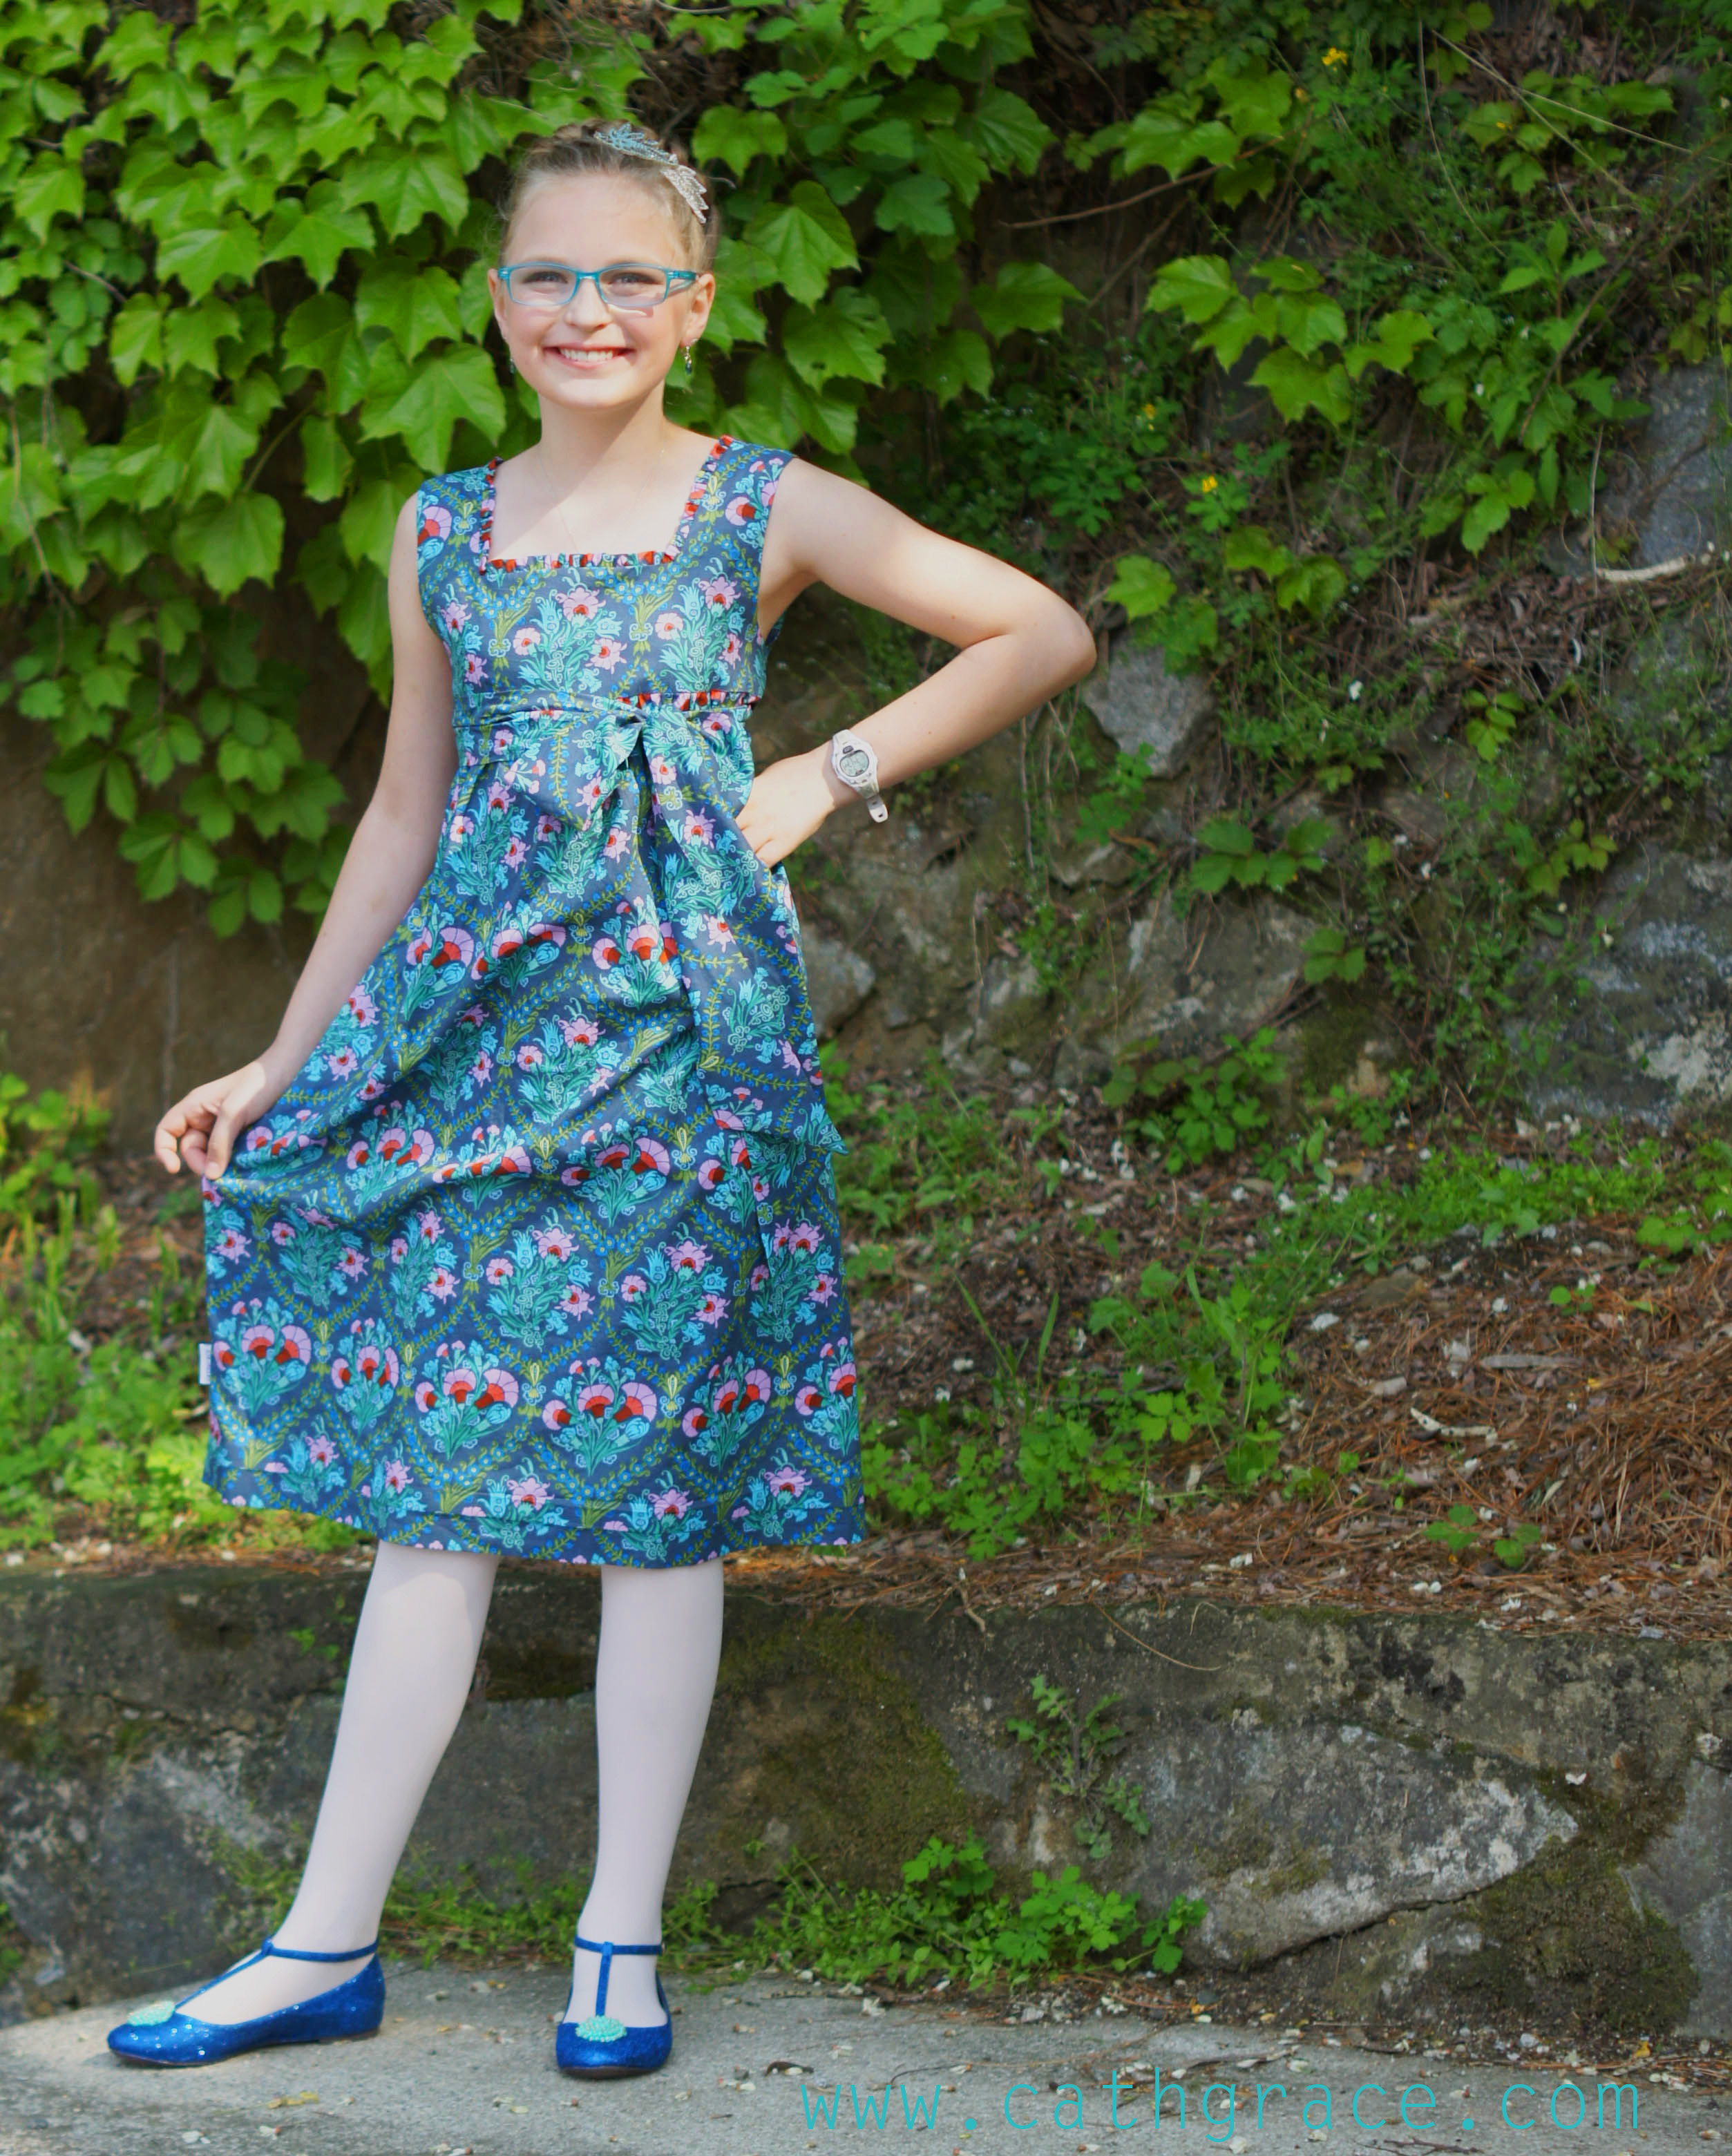 Special Occasion Dresses and Clothing for Kids come in a variety of sizes and styles at Macy's. Shop Special Occasion Dresses and Clothing for Kids at Macy's and find top brands in all sizes.